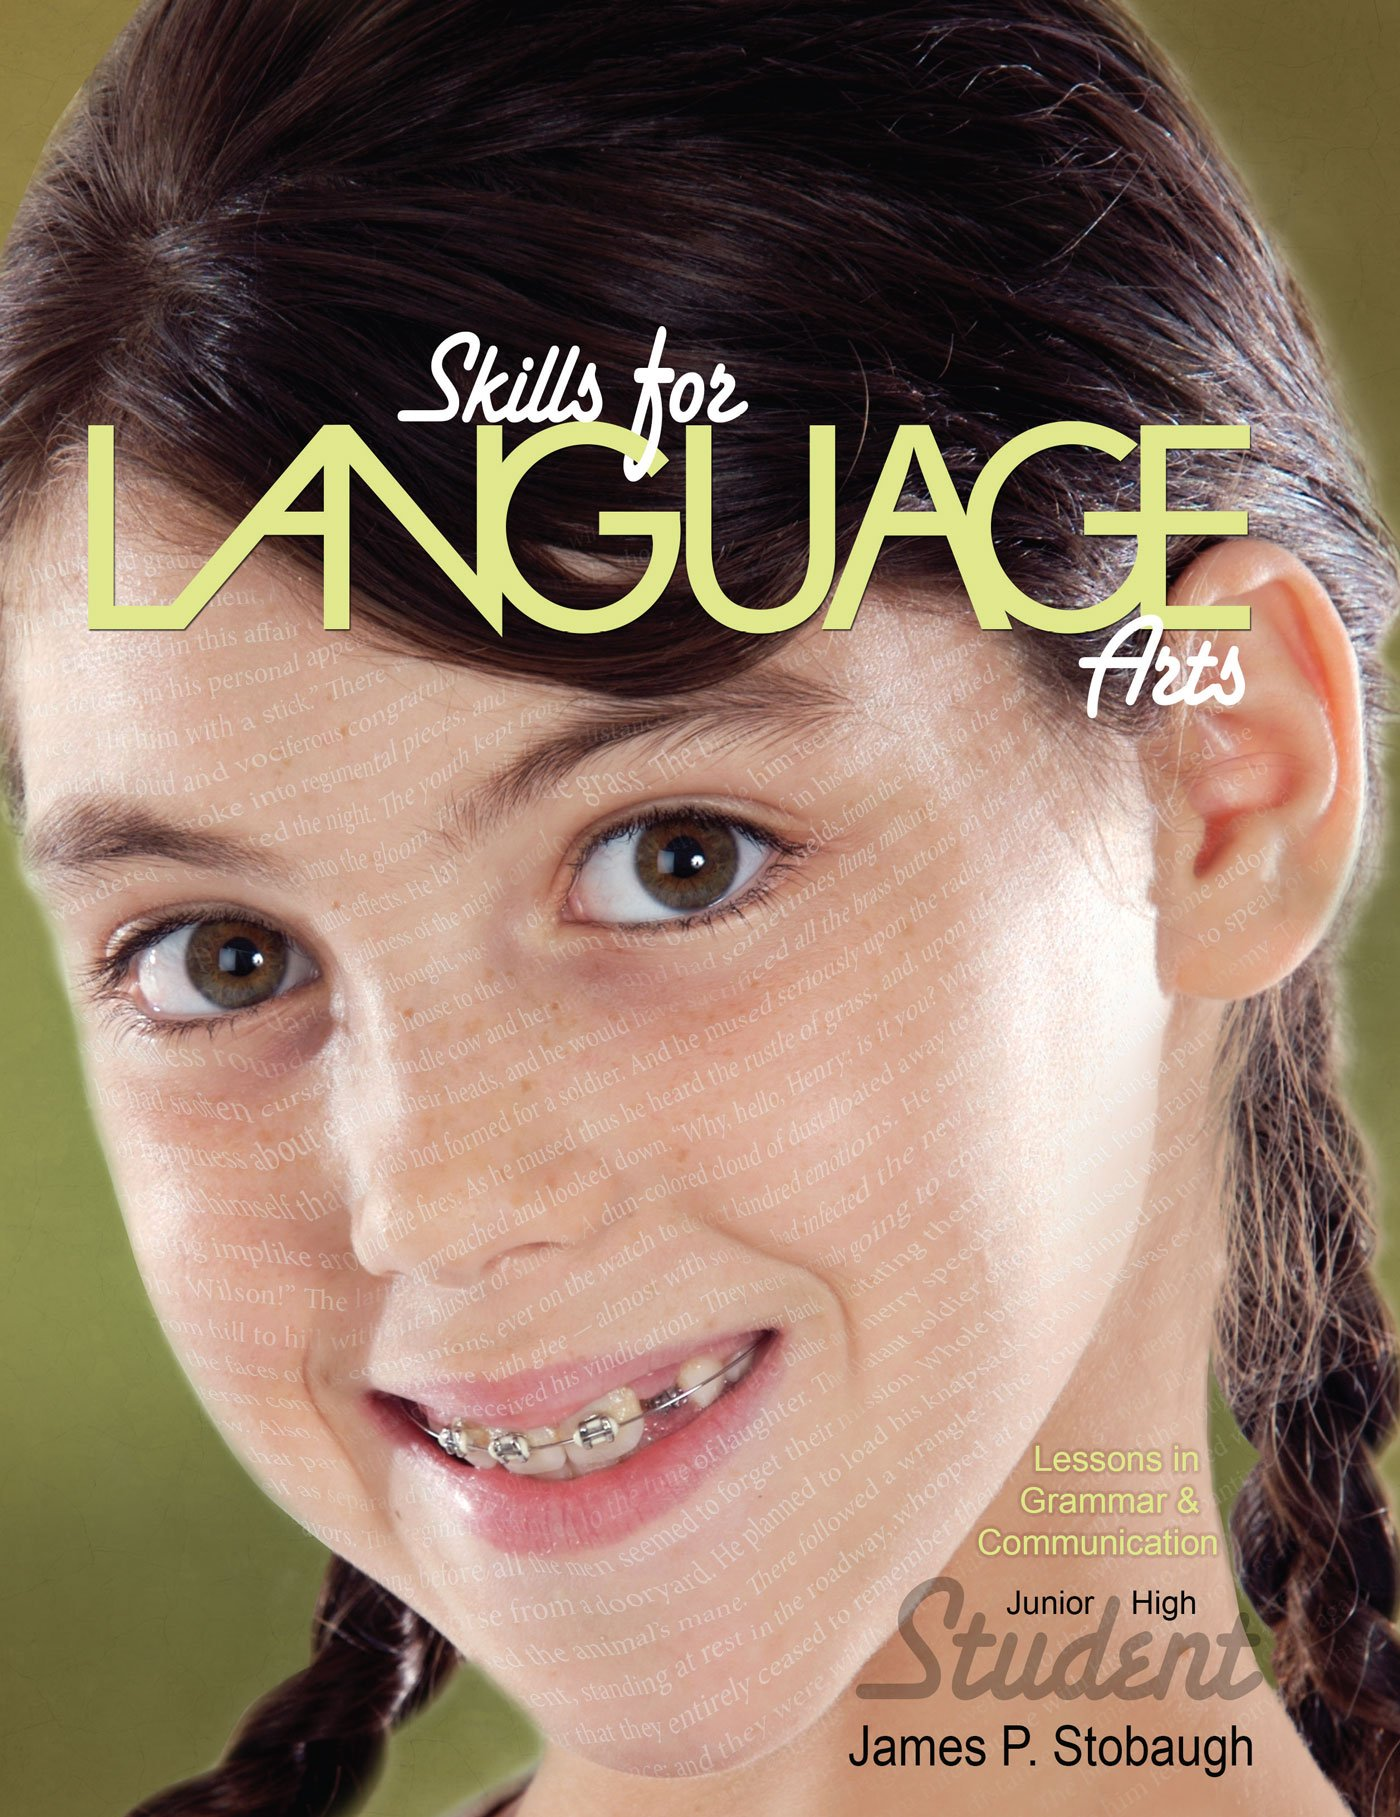 Skills for Language Arts (Student) by Master Books